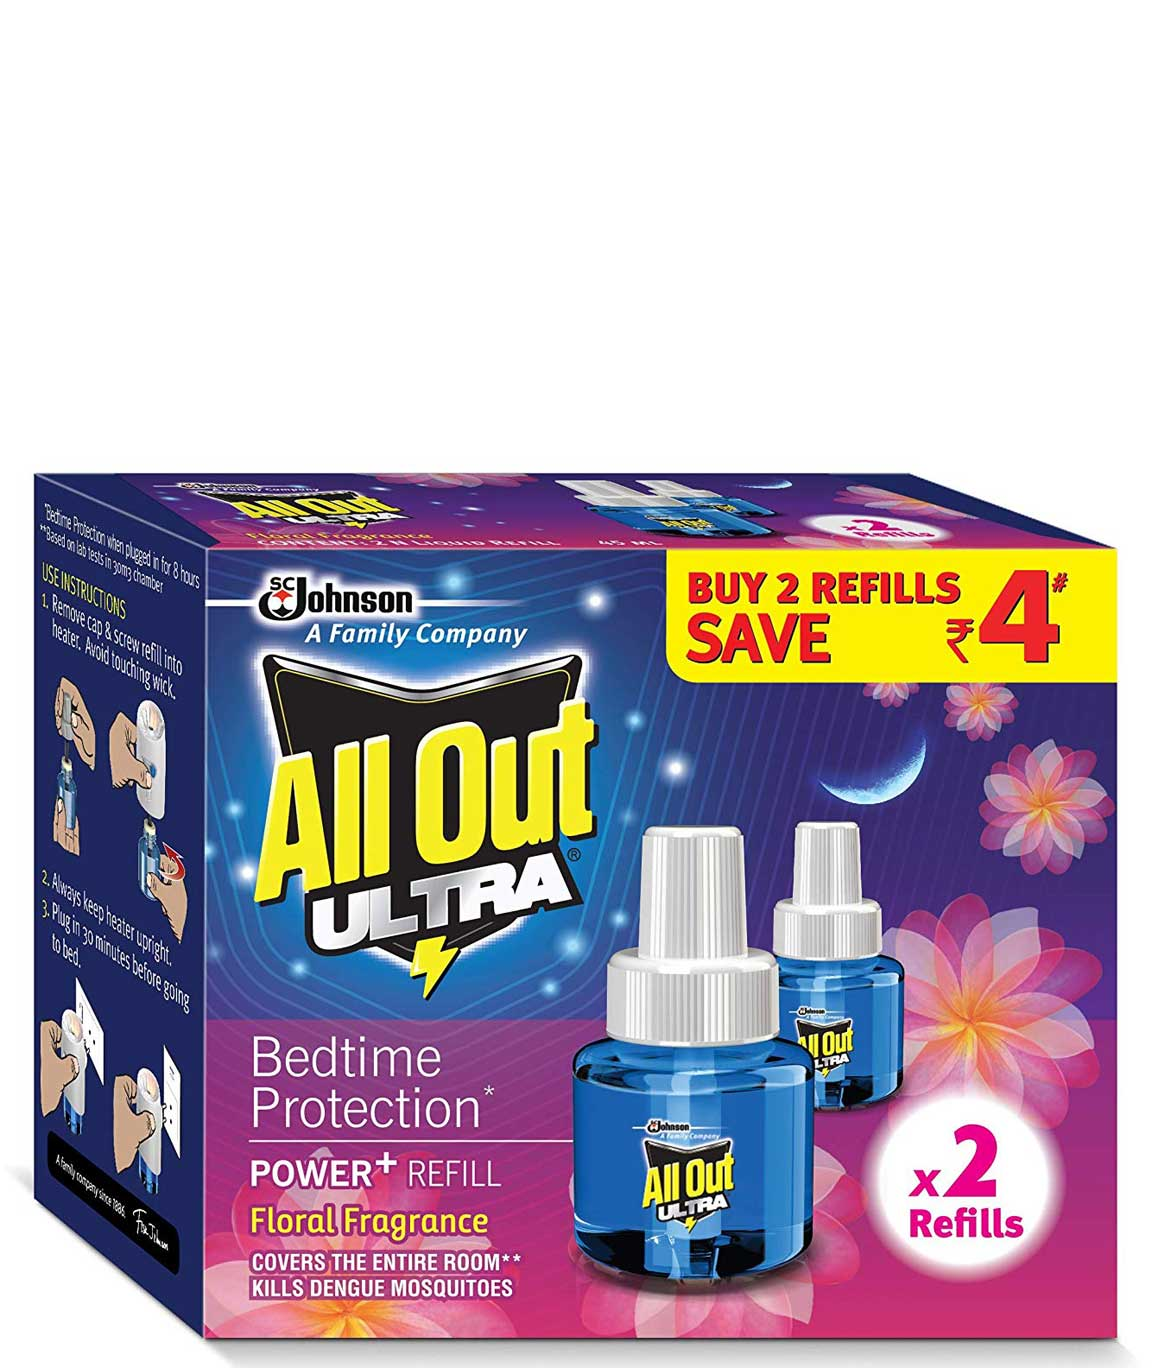 All Out Ultra Power+ Floral Fragrance (2 refills pack)